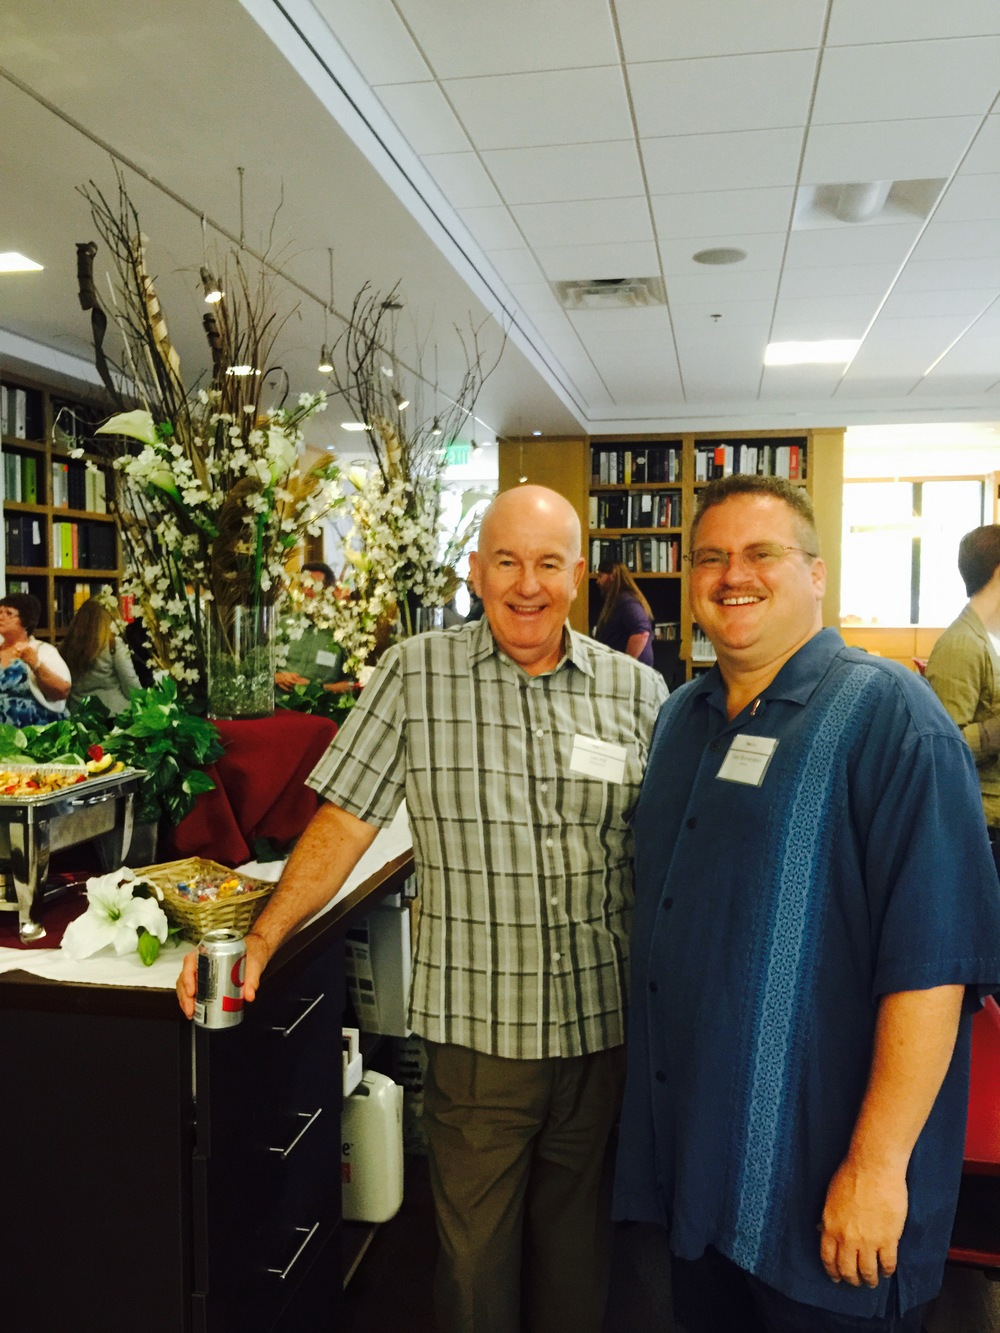 Les Hill of Electrosonic and Gary Blumenstein of Rethink meet up at the TEA's NextGen GibGab speed networking event.